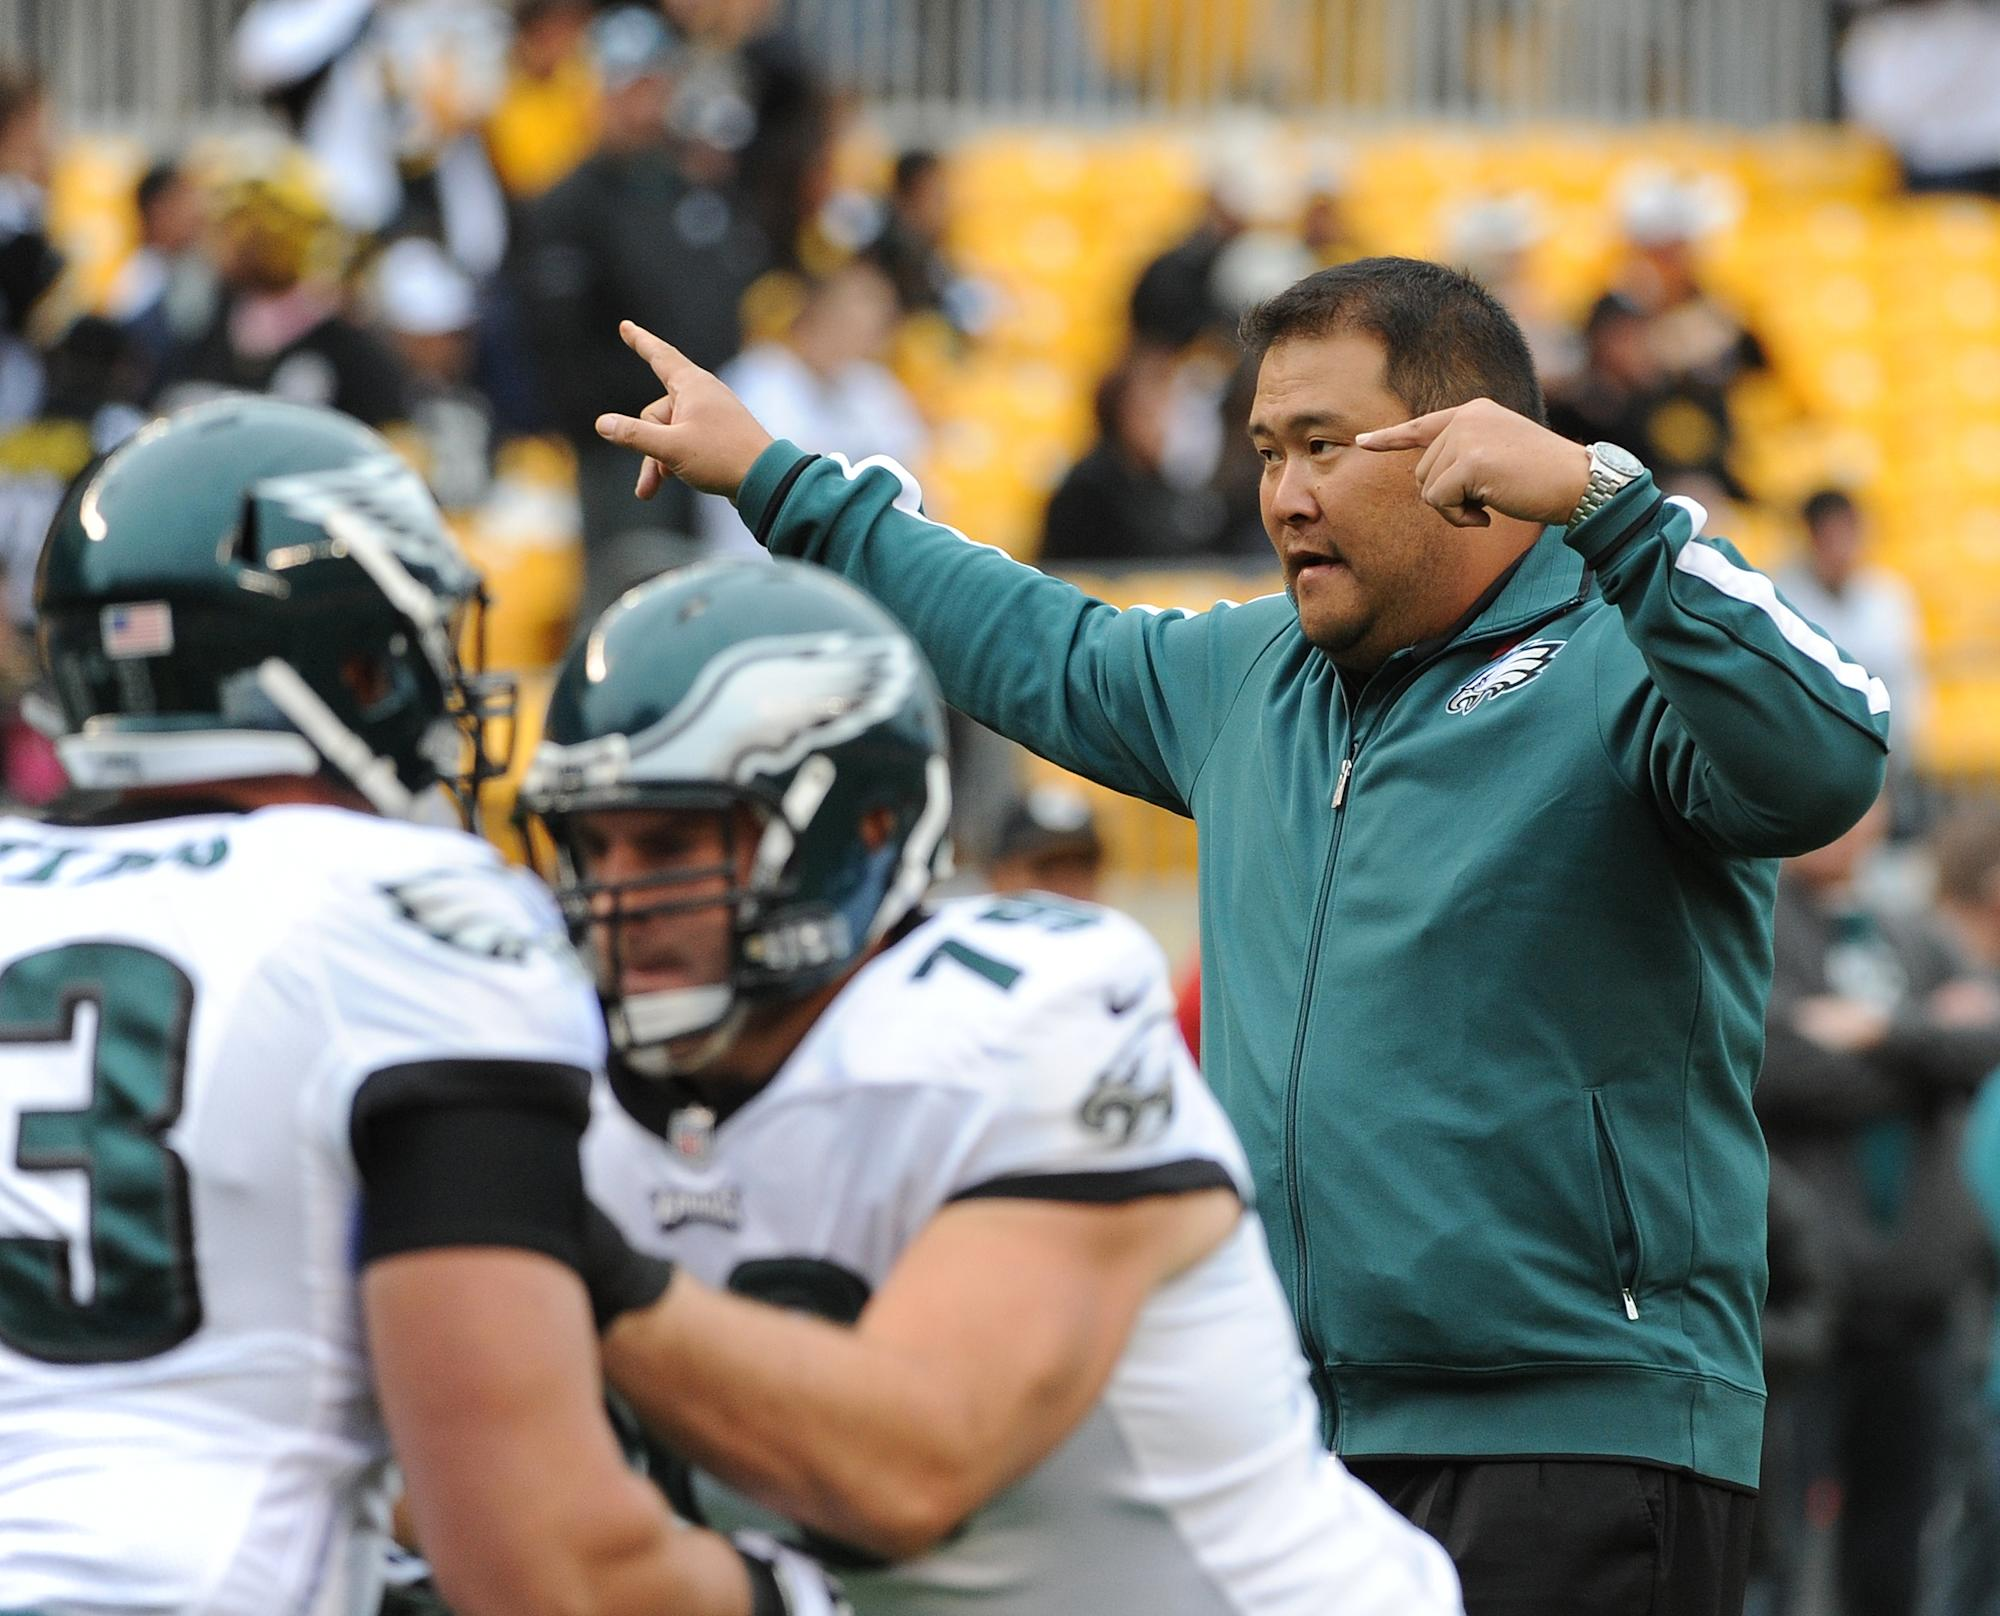 Ex-Eagles coach Eugene Chung says NFL team told him he was 'not the right minority' in job interview